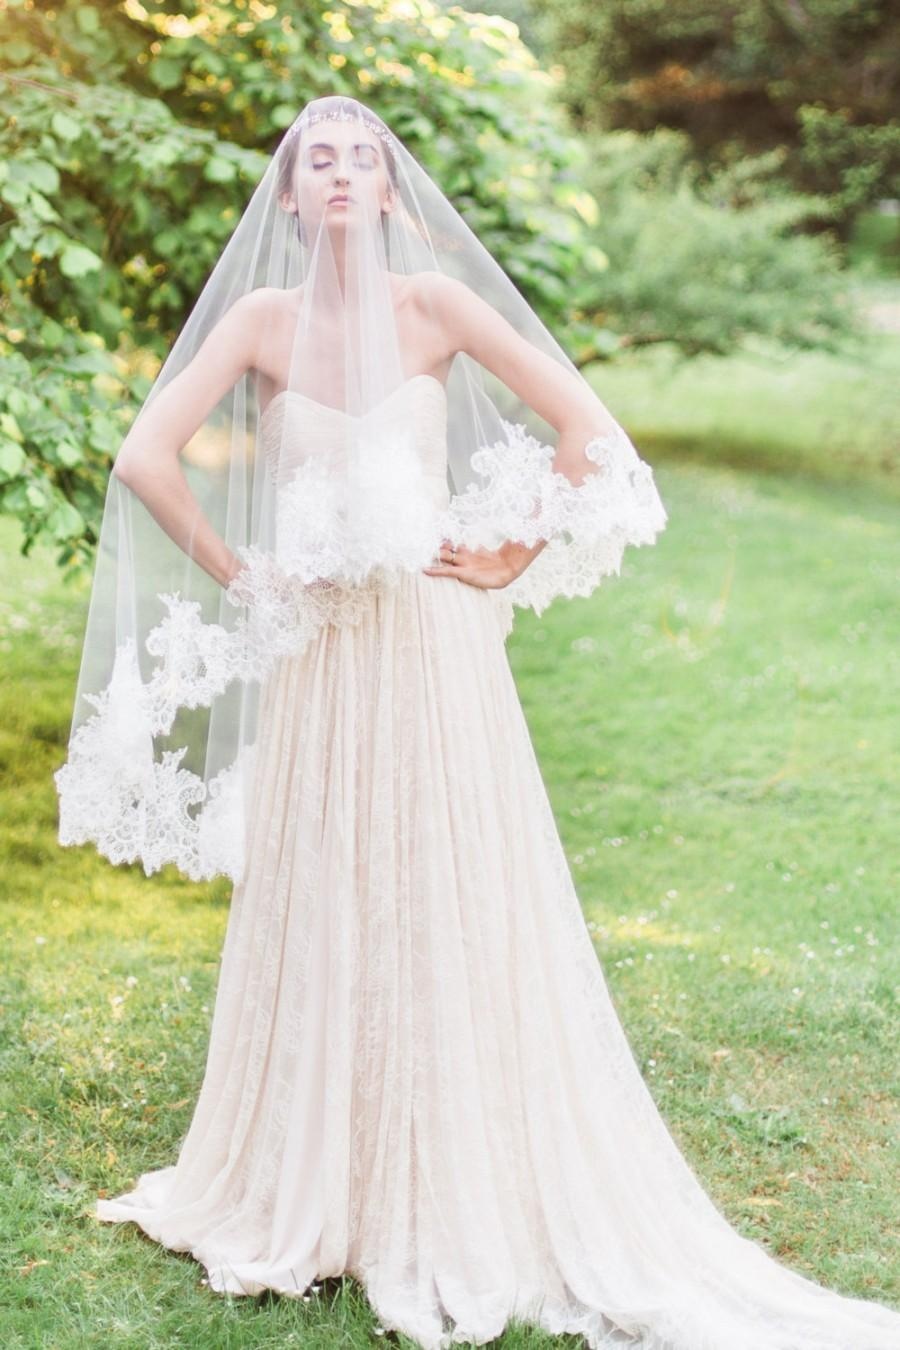 Свадьба - Cassia Chantilly Lace Fingertip Veil, Chantilly Lace Veil, Fingertip Veil, Double Layer Veil, Lace Veil, Veil with Blusher